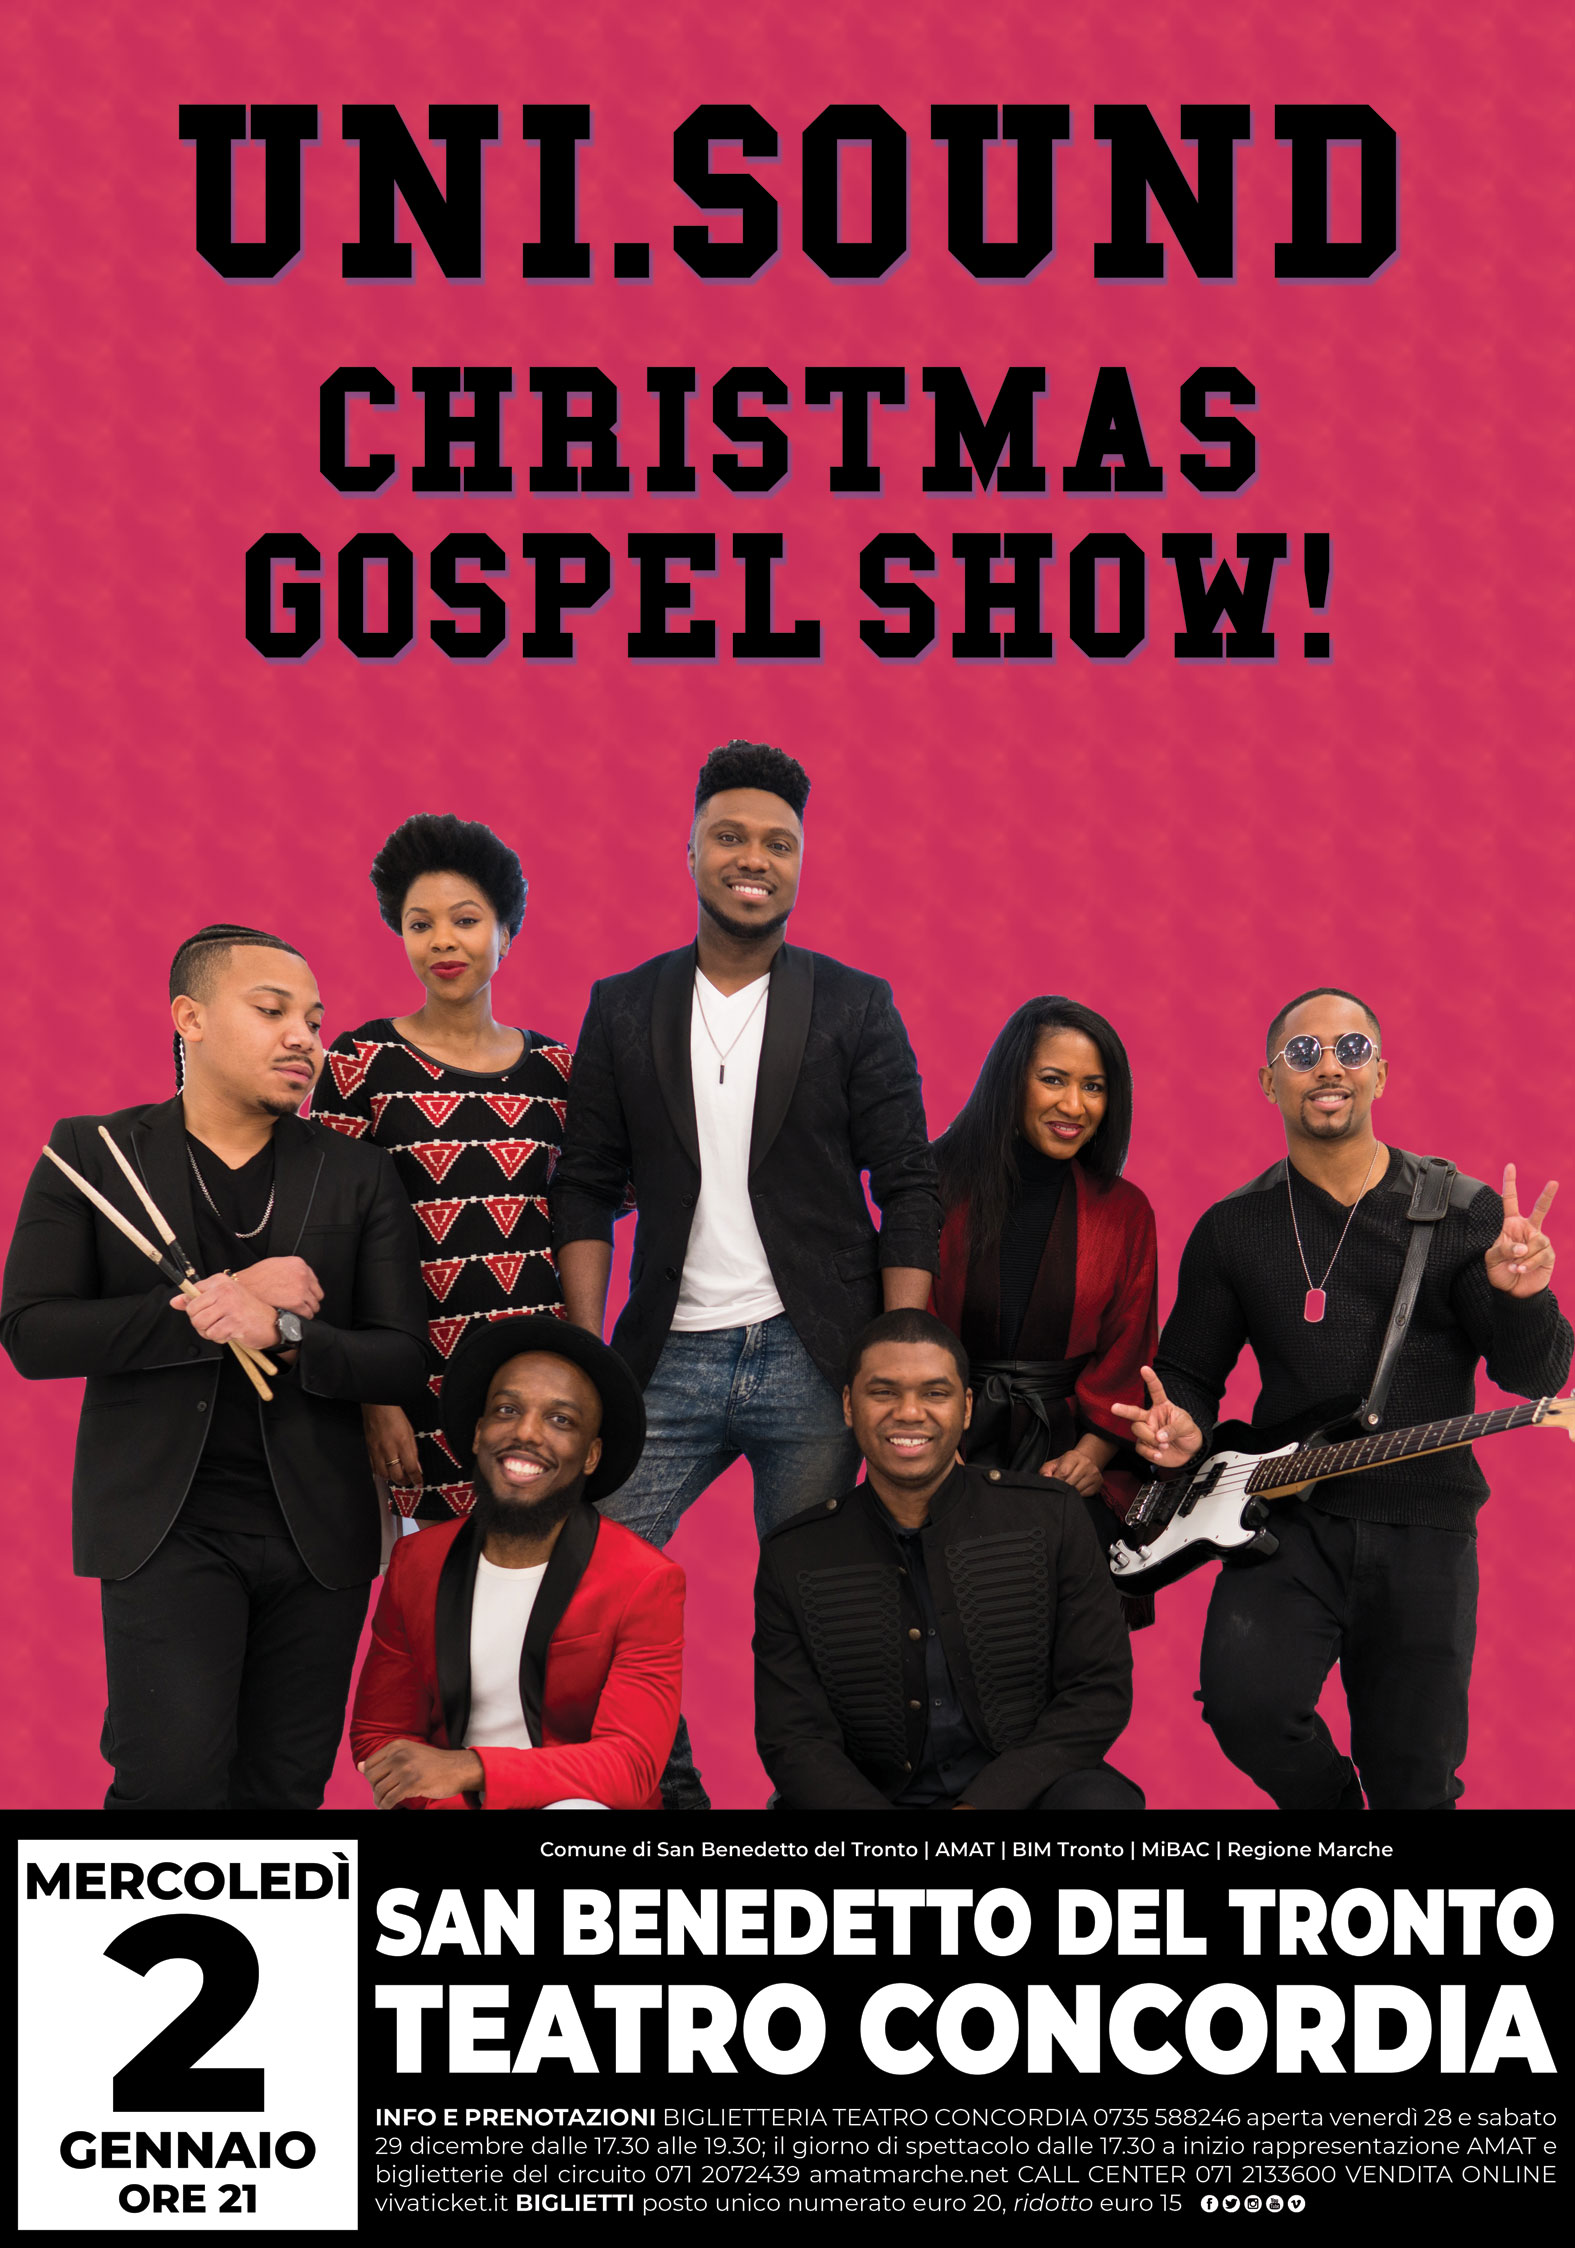 UNI.SOUND CHRISTMAS GOSPEL SHOW!